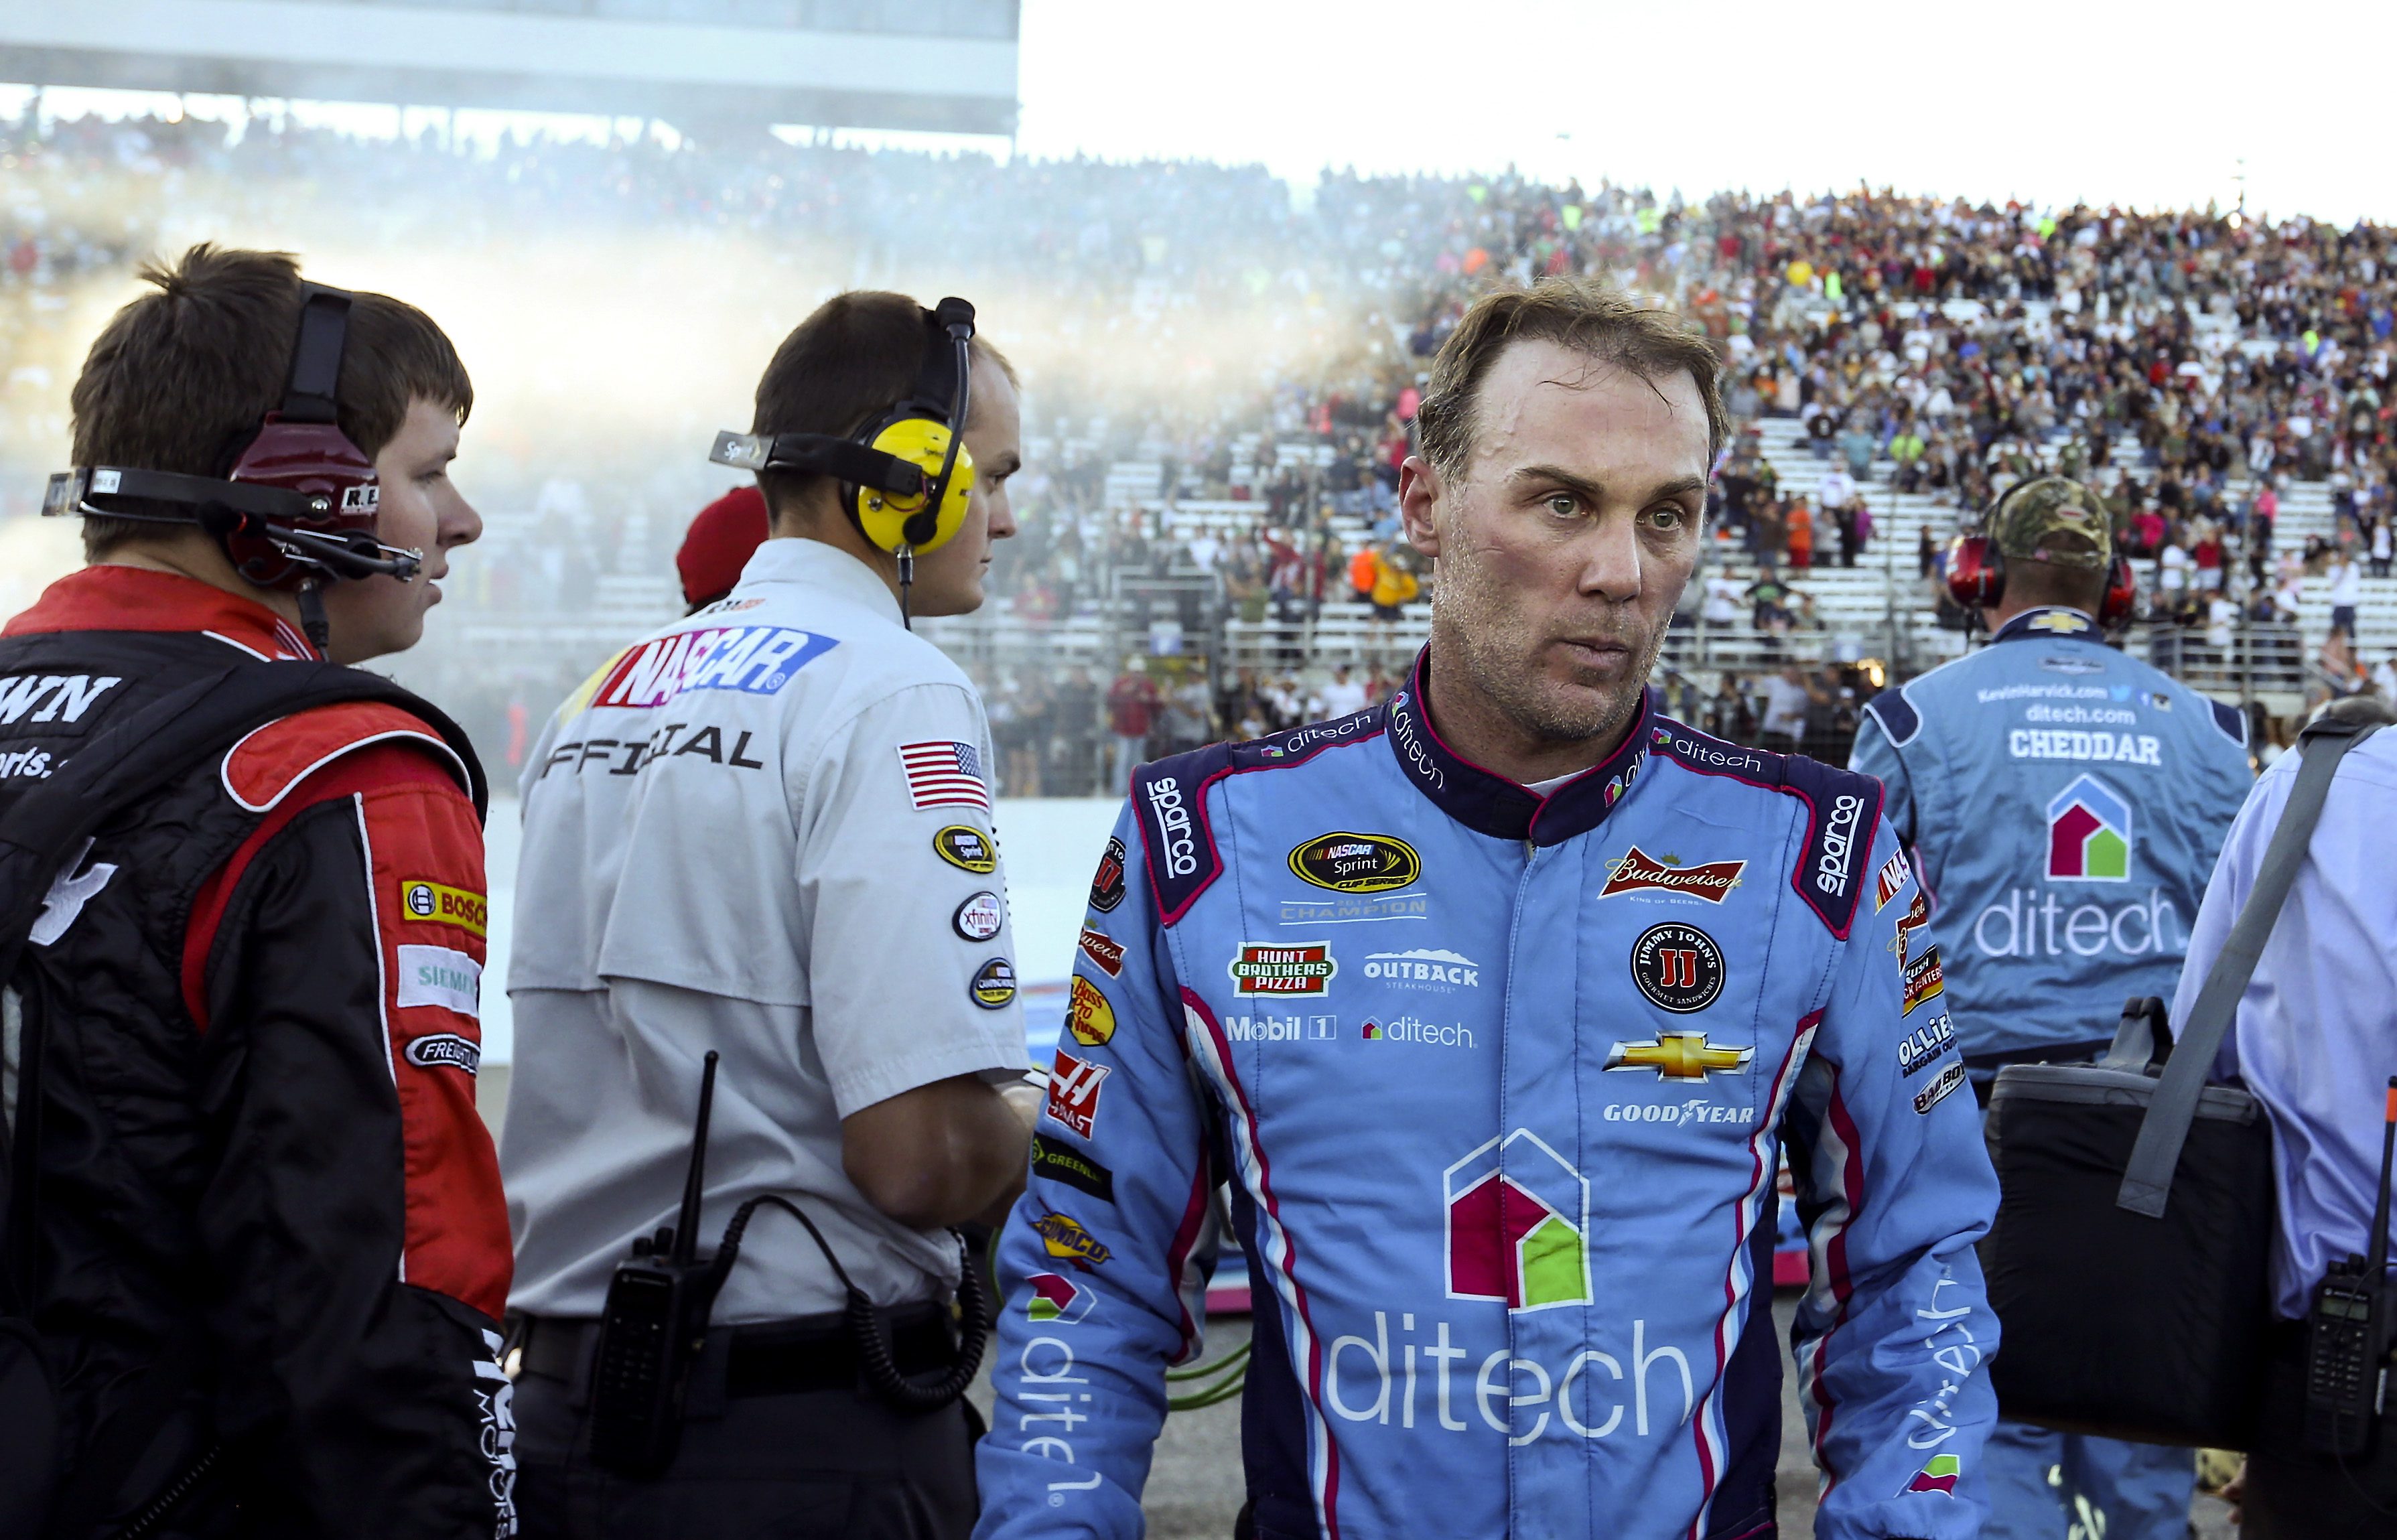 Smoke from Matt Kenseth's victory burnout hangs in the air behind Kevin Harvick as Harvick leaves the pit area after the NASCAR Sprint Cup series auto race at New Hampshire Motor Speedway in Loudon, N.H., Sunday, Sept. 27, 2015. Harvick, who was in the le